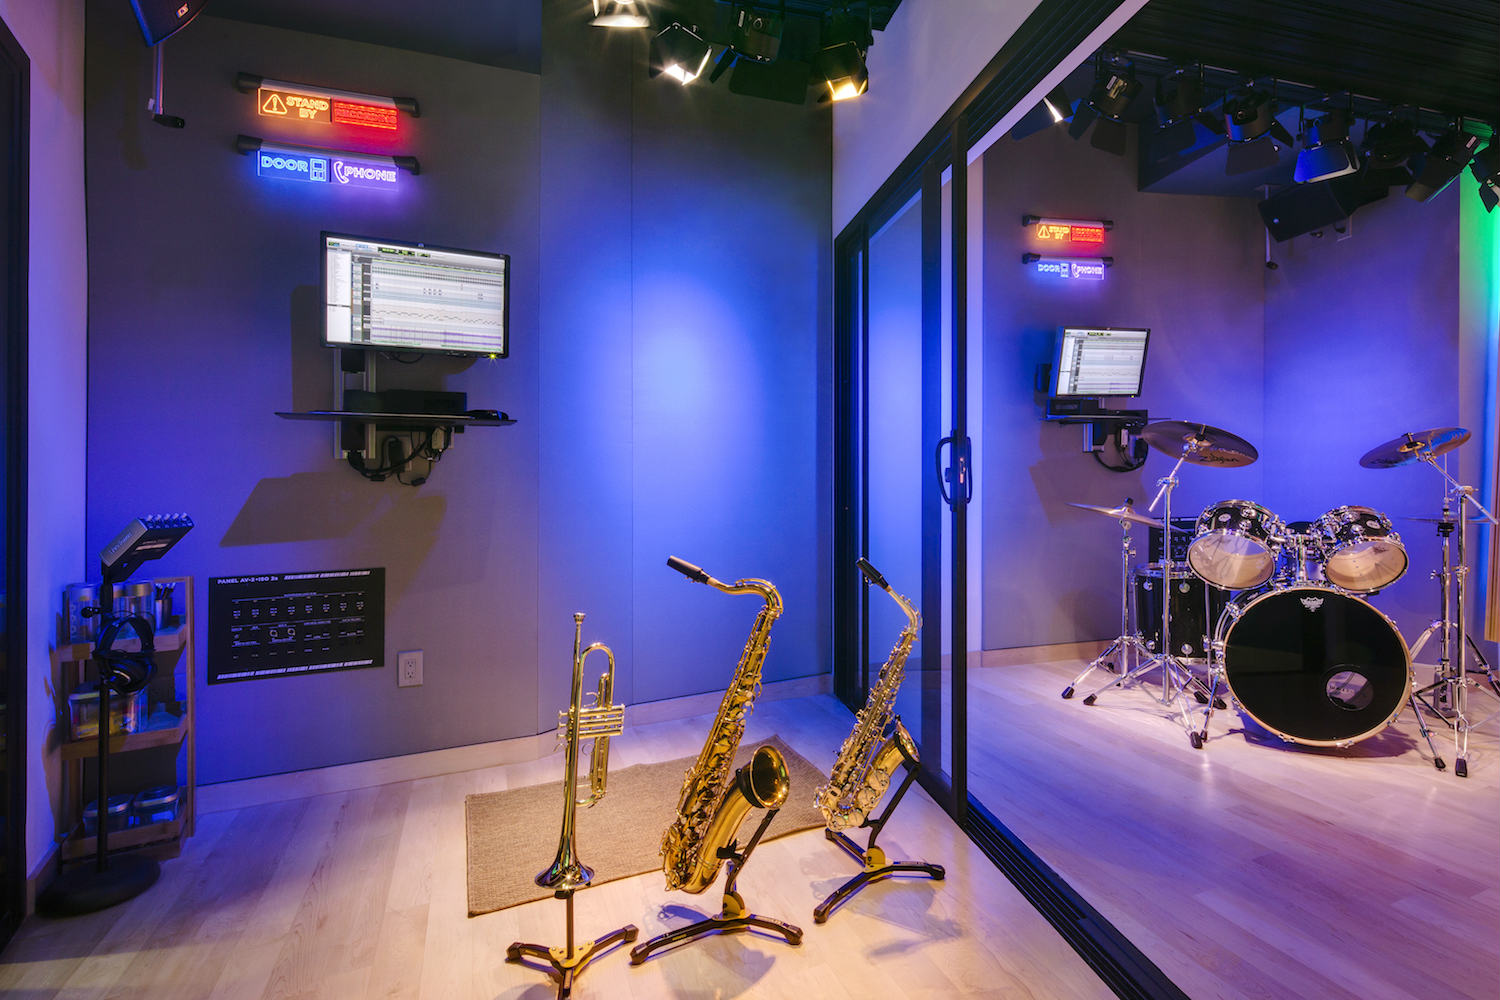 The MacPhails met WSDG to achieve a full up, professionally designed, acoustically superlative residential recording studio for their thriving audio production business. ISO Booth with sax and drums.